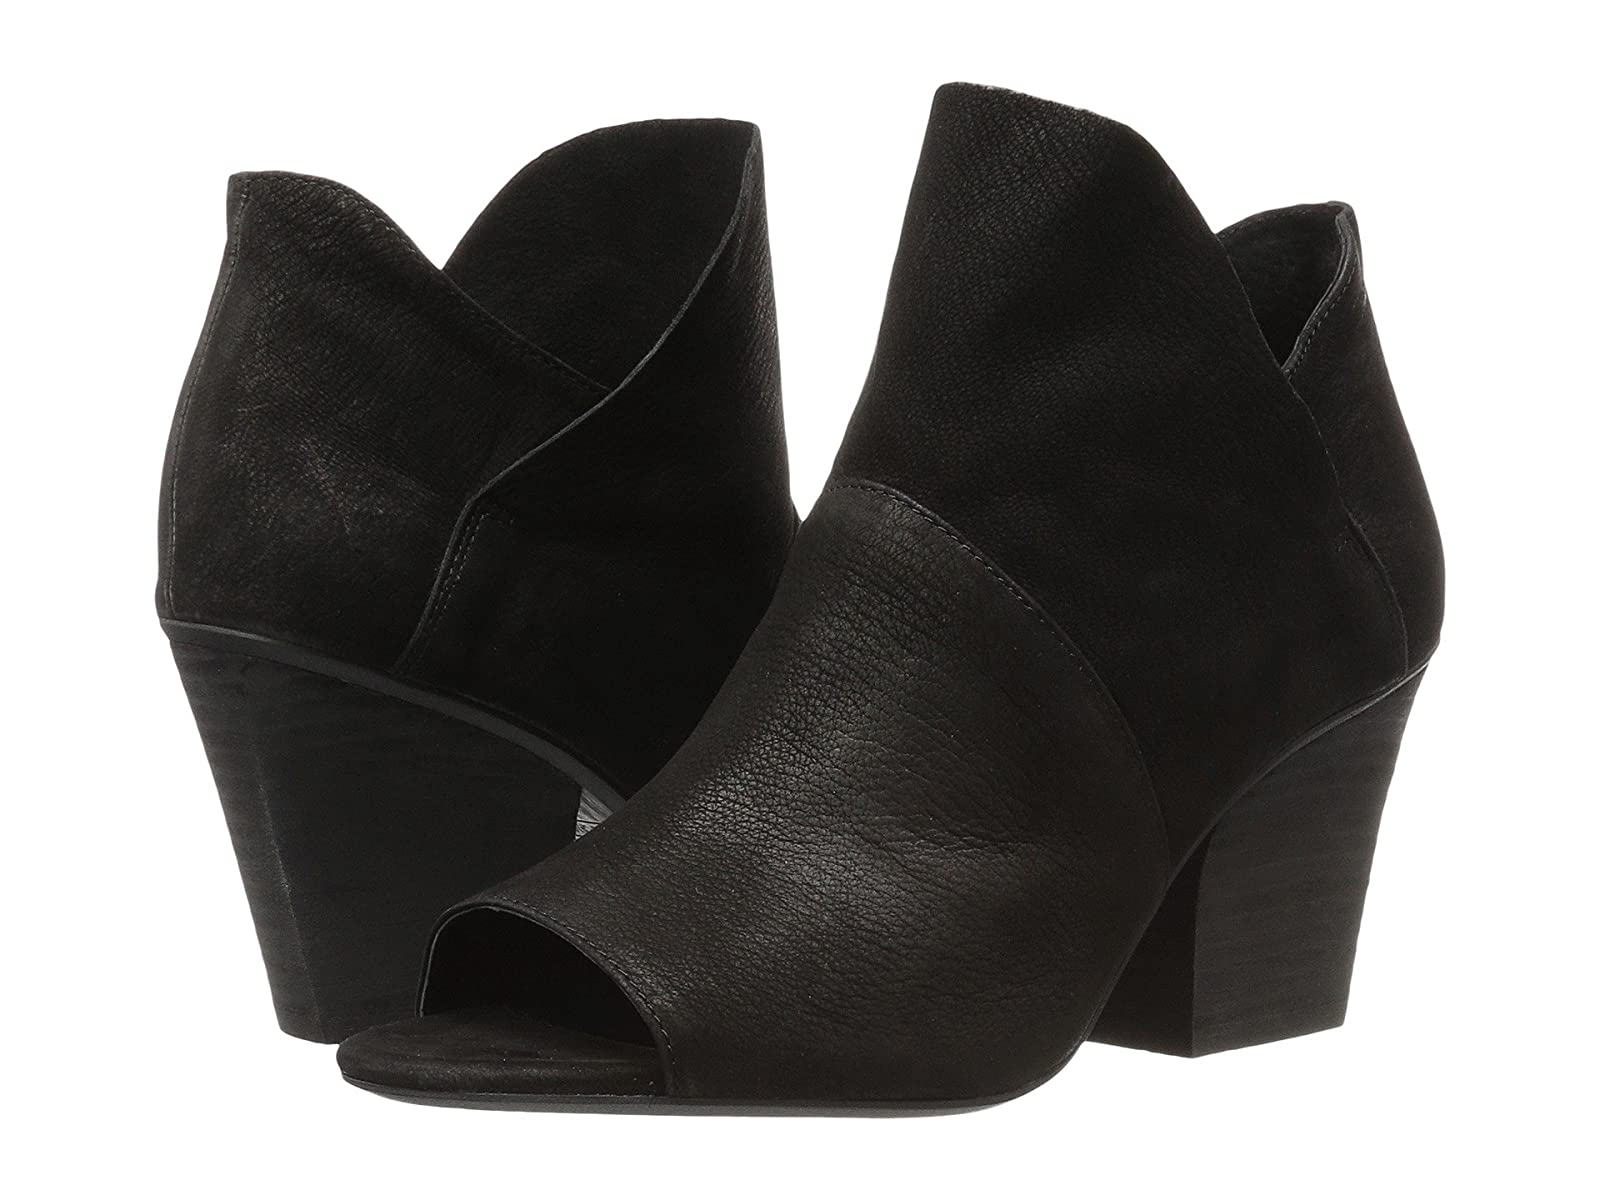 Vince Camuto ChantinaCheap and distinctive eye-catching shoes